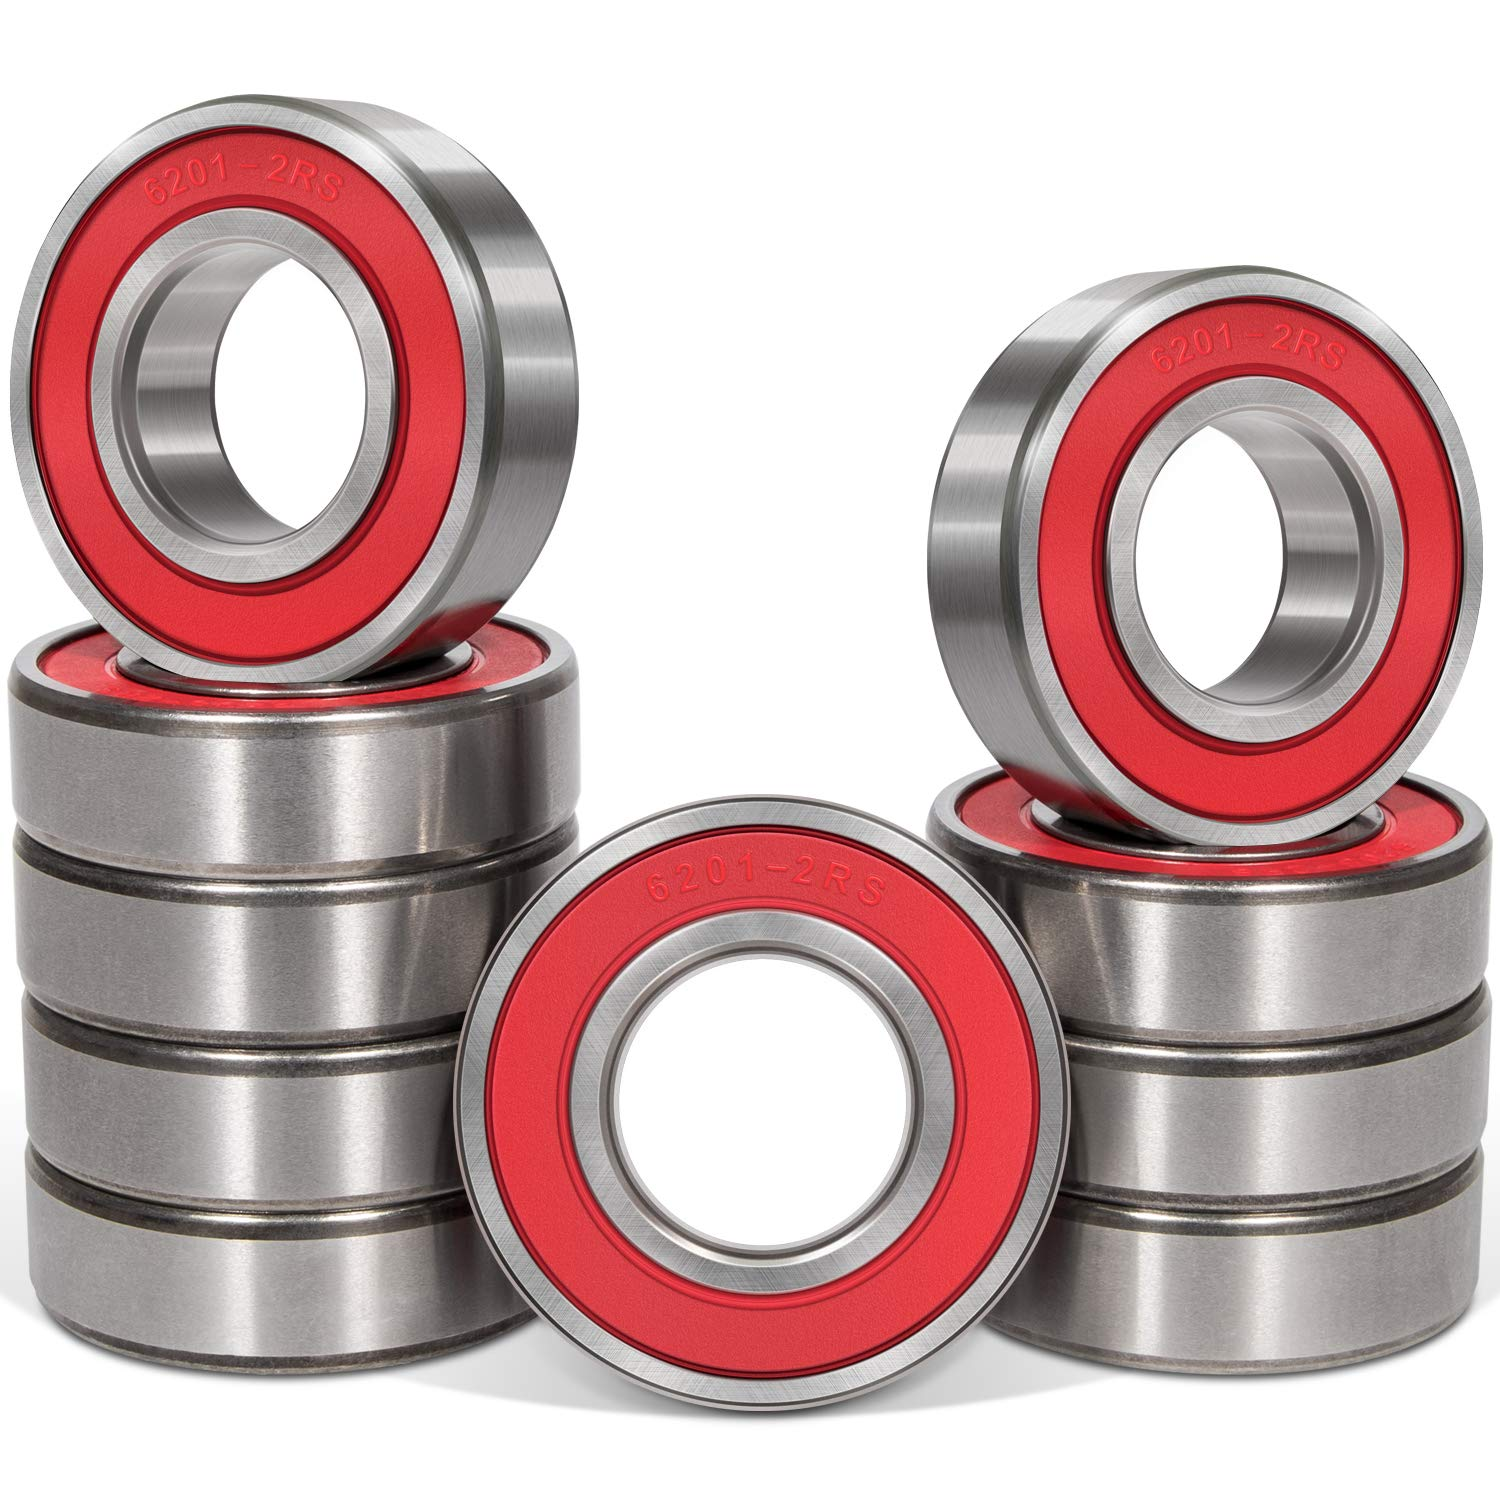 10 Pcs 6201-2RS Ball Bearings (12x32x10mm) Double Rubber Red Seal Bearing, Deep Groove for Garden Machinery, Electric Toys and Tool, etc. 71t0vIqO-xL